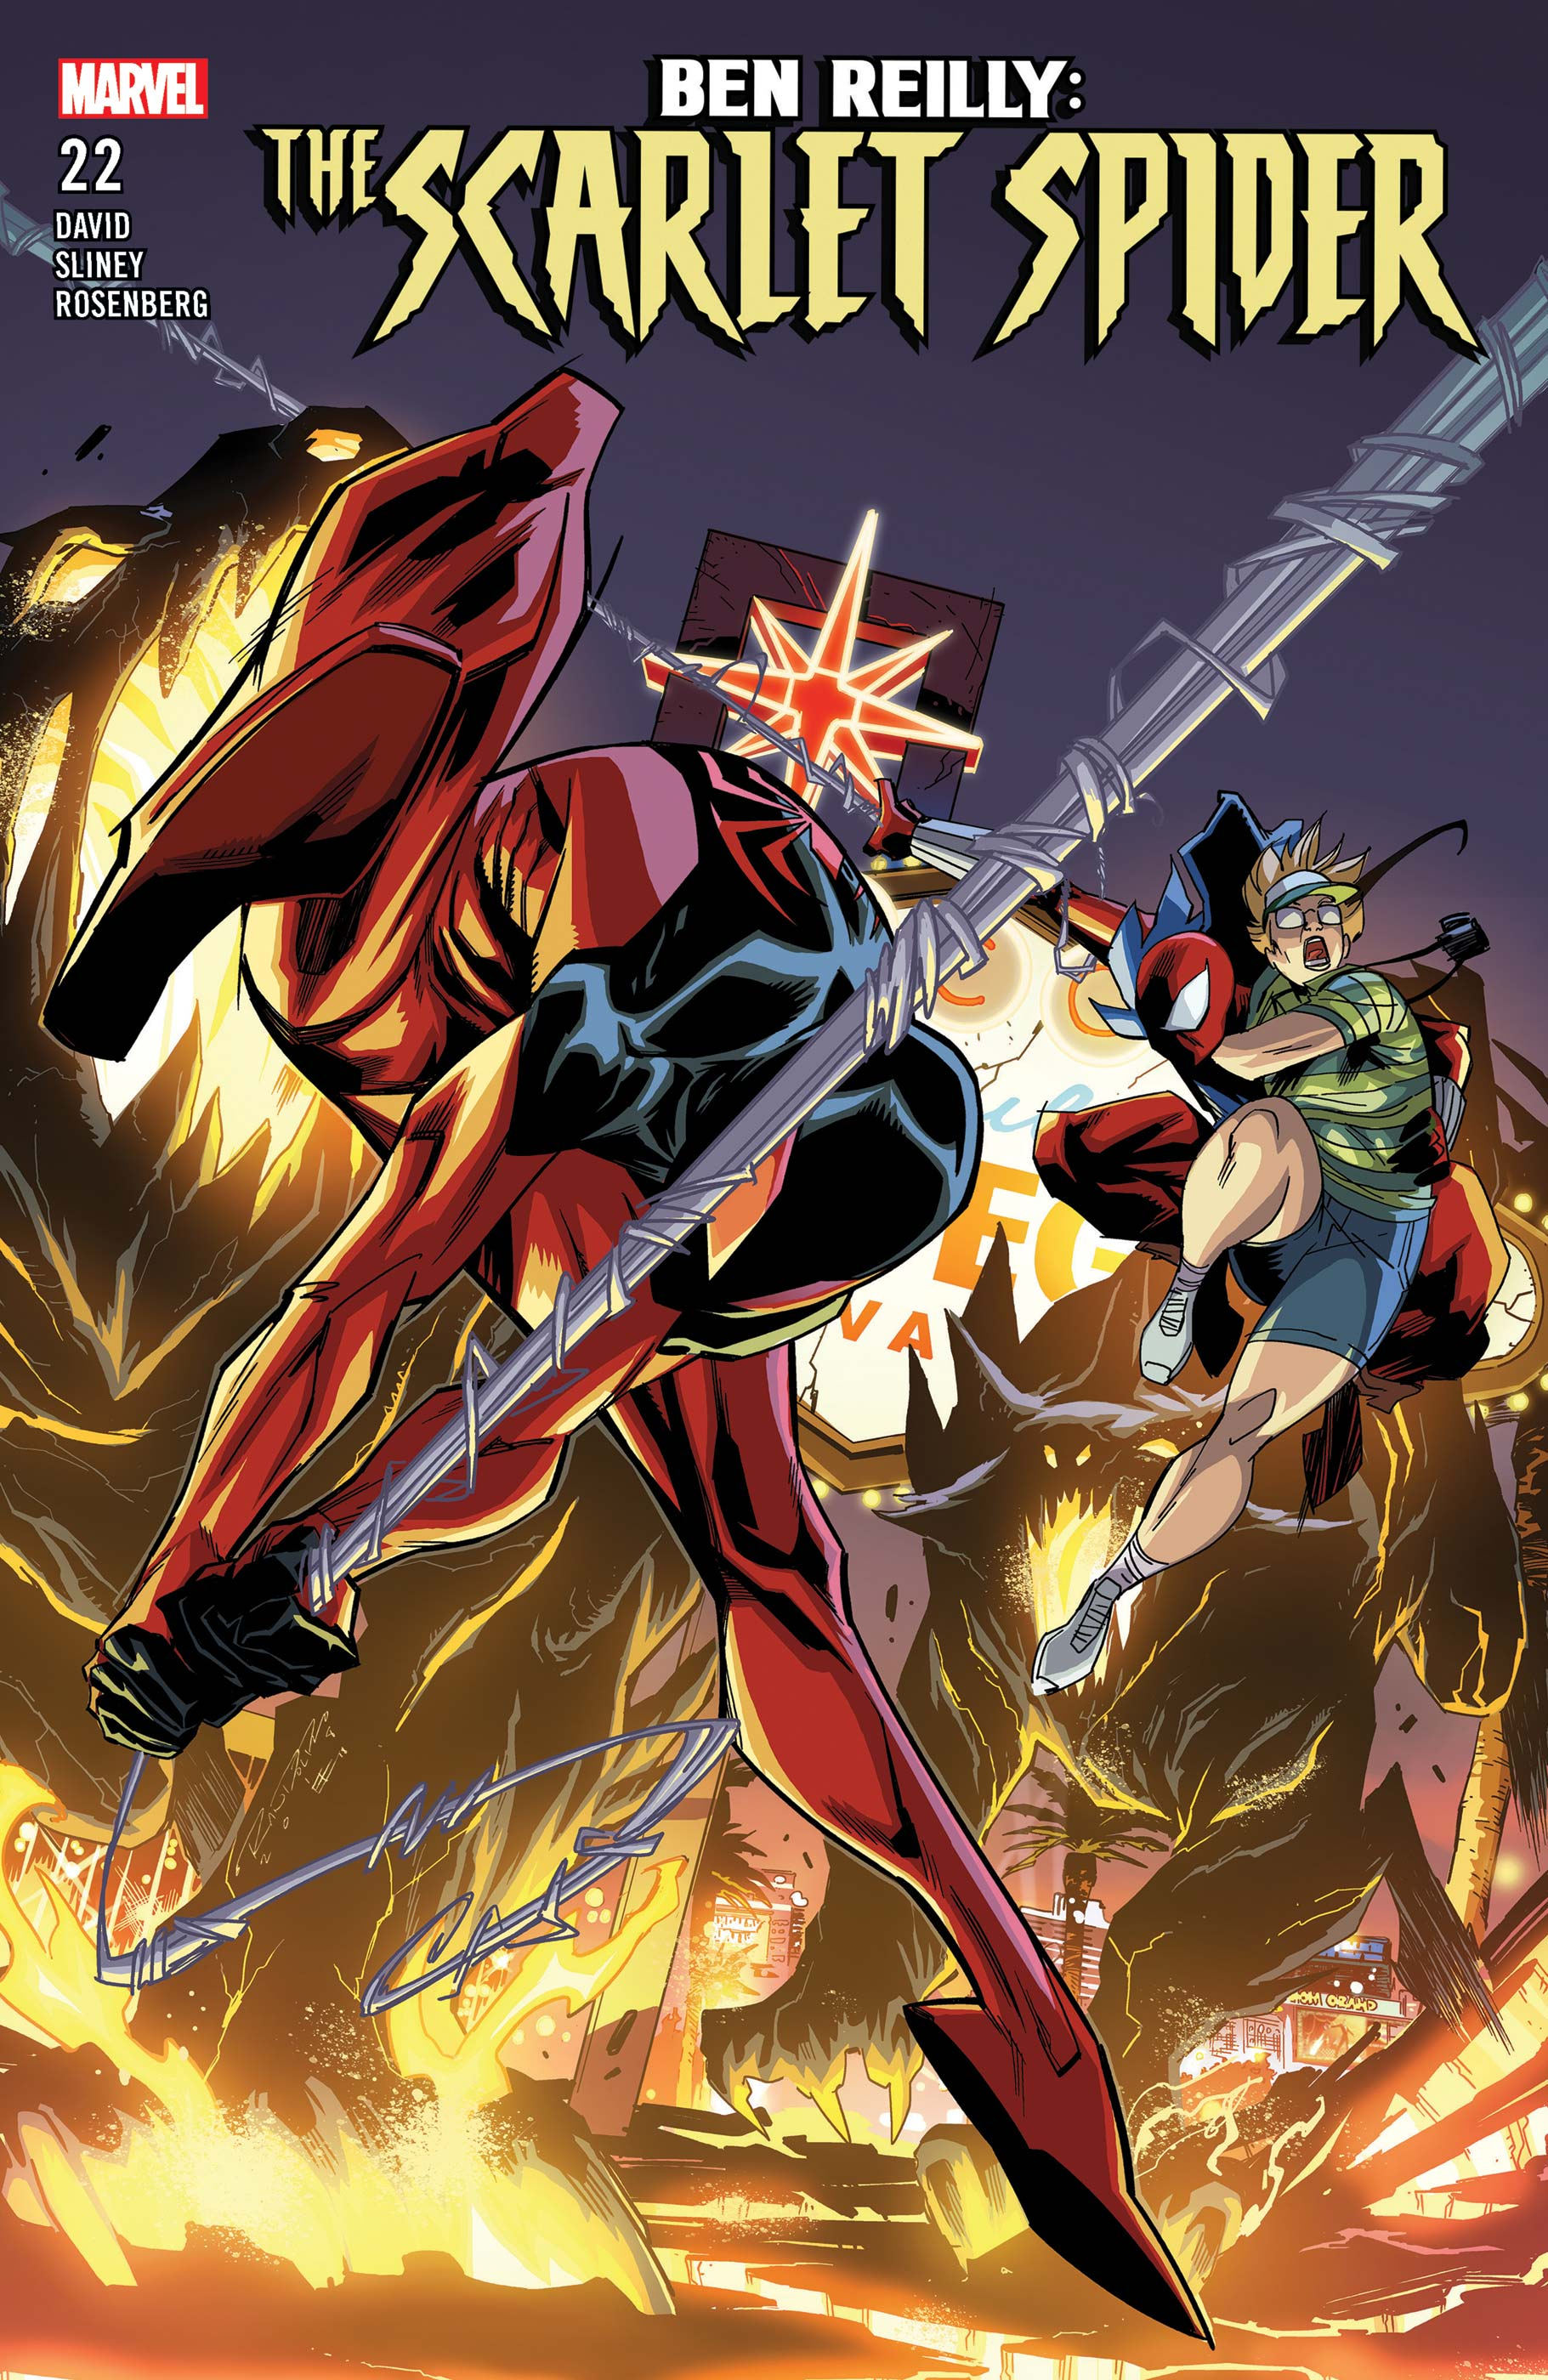 Ben Reilly: Scarlet Spider (2017) #22